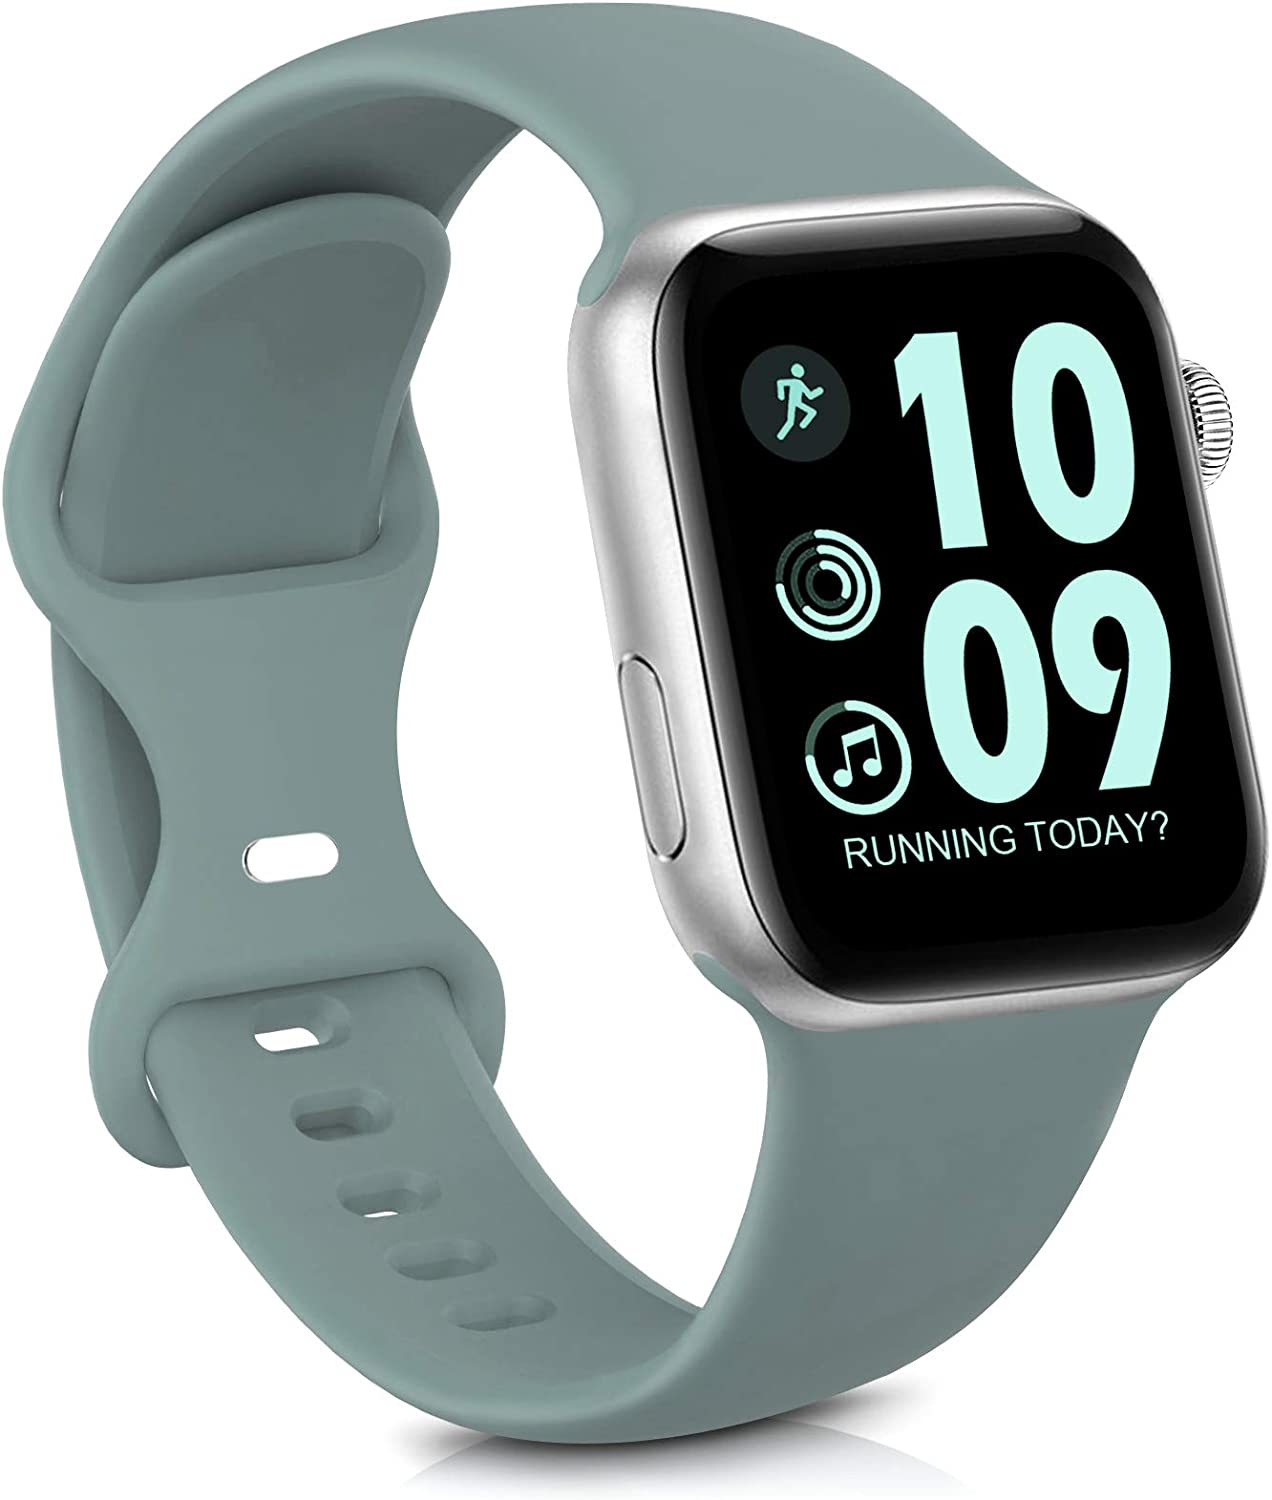 GeekSpark Sport Band Compatible with Apple Watch Band 38mm 40mm for Women Men, Soft Silicone Replacement Strap Band for iwatch SE/Series 6/5/4/3/2/1 Cactus 38mm/40mm S/M